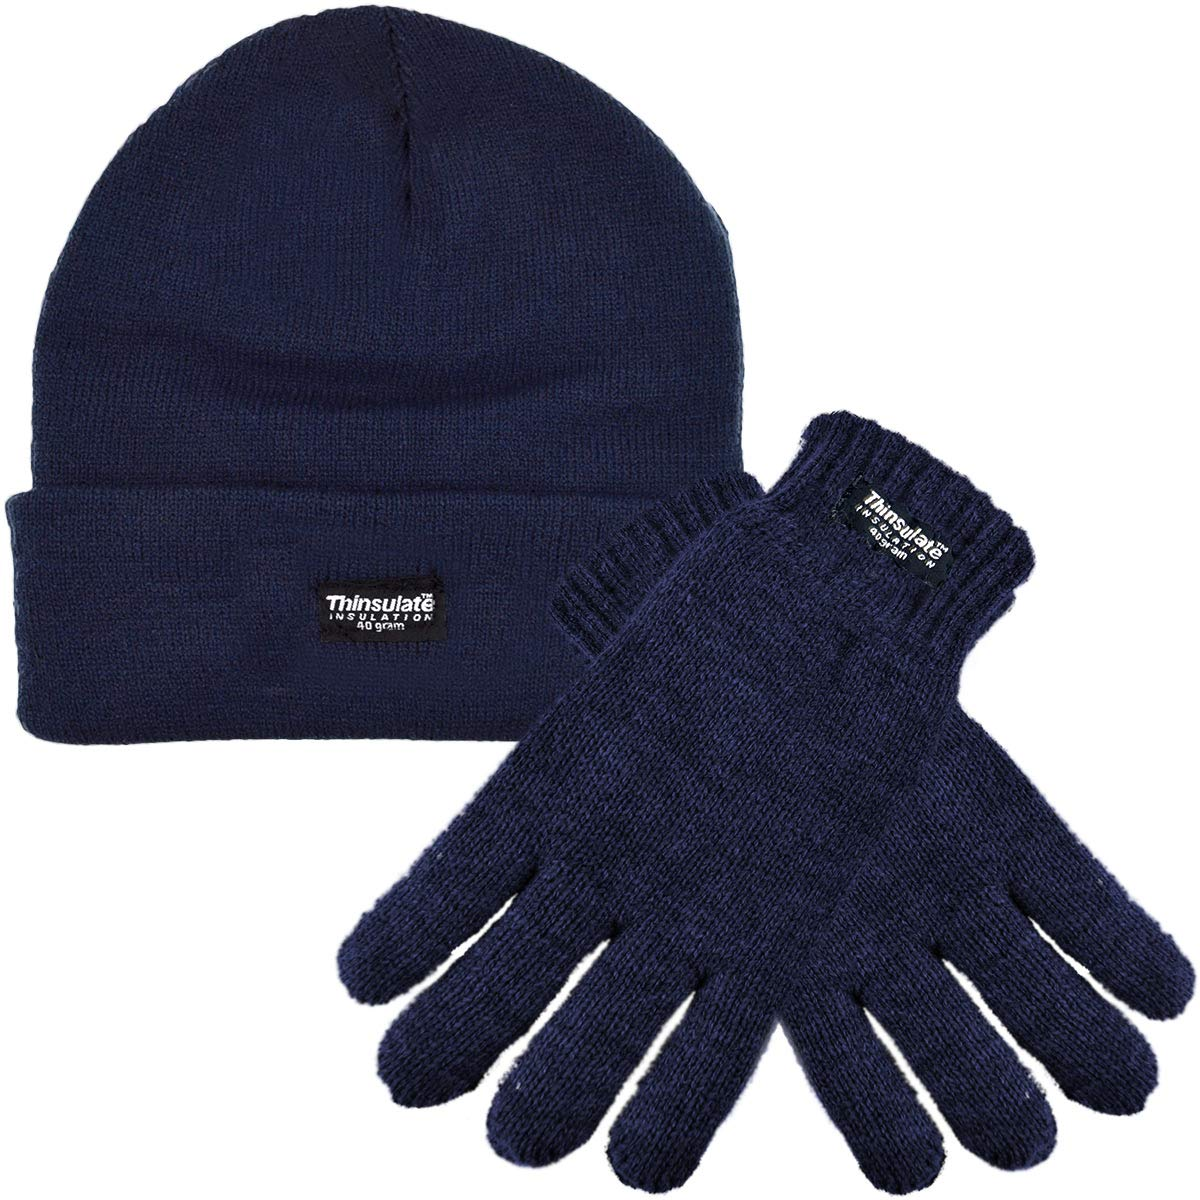 Kids Thermal Thinsulate Hat and Gloves Set